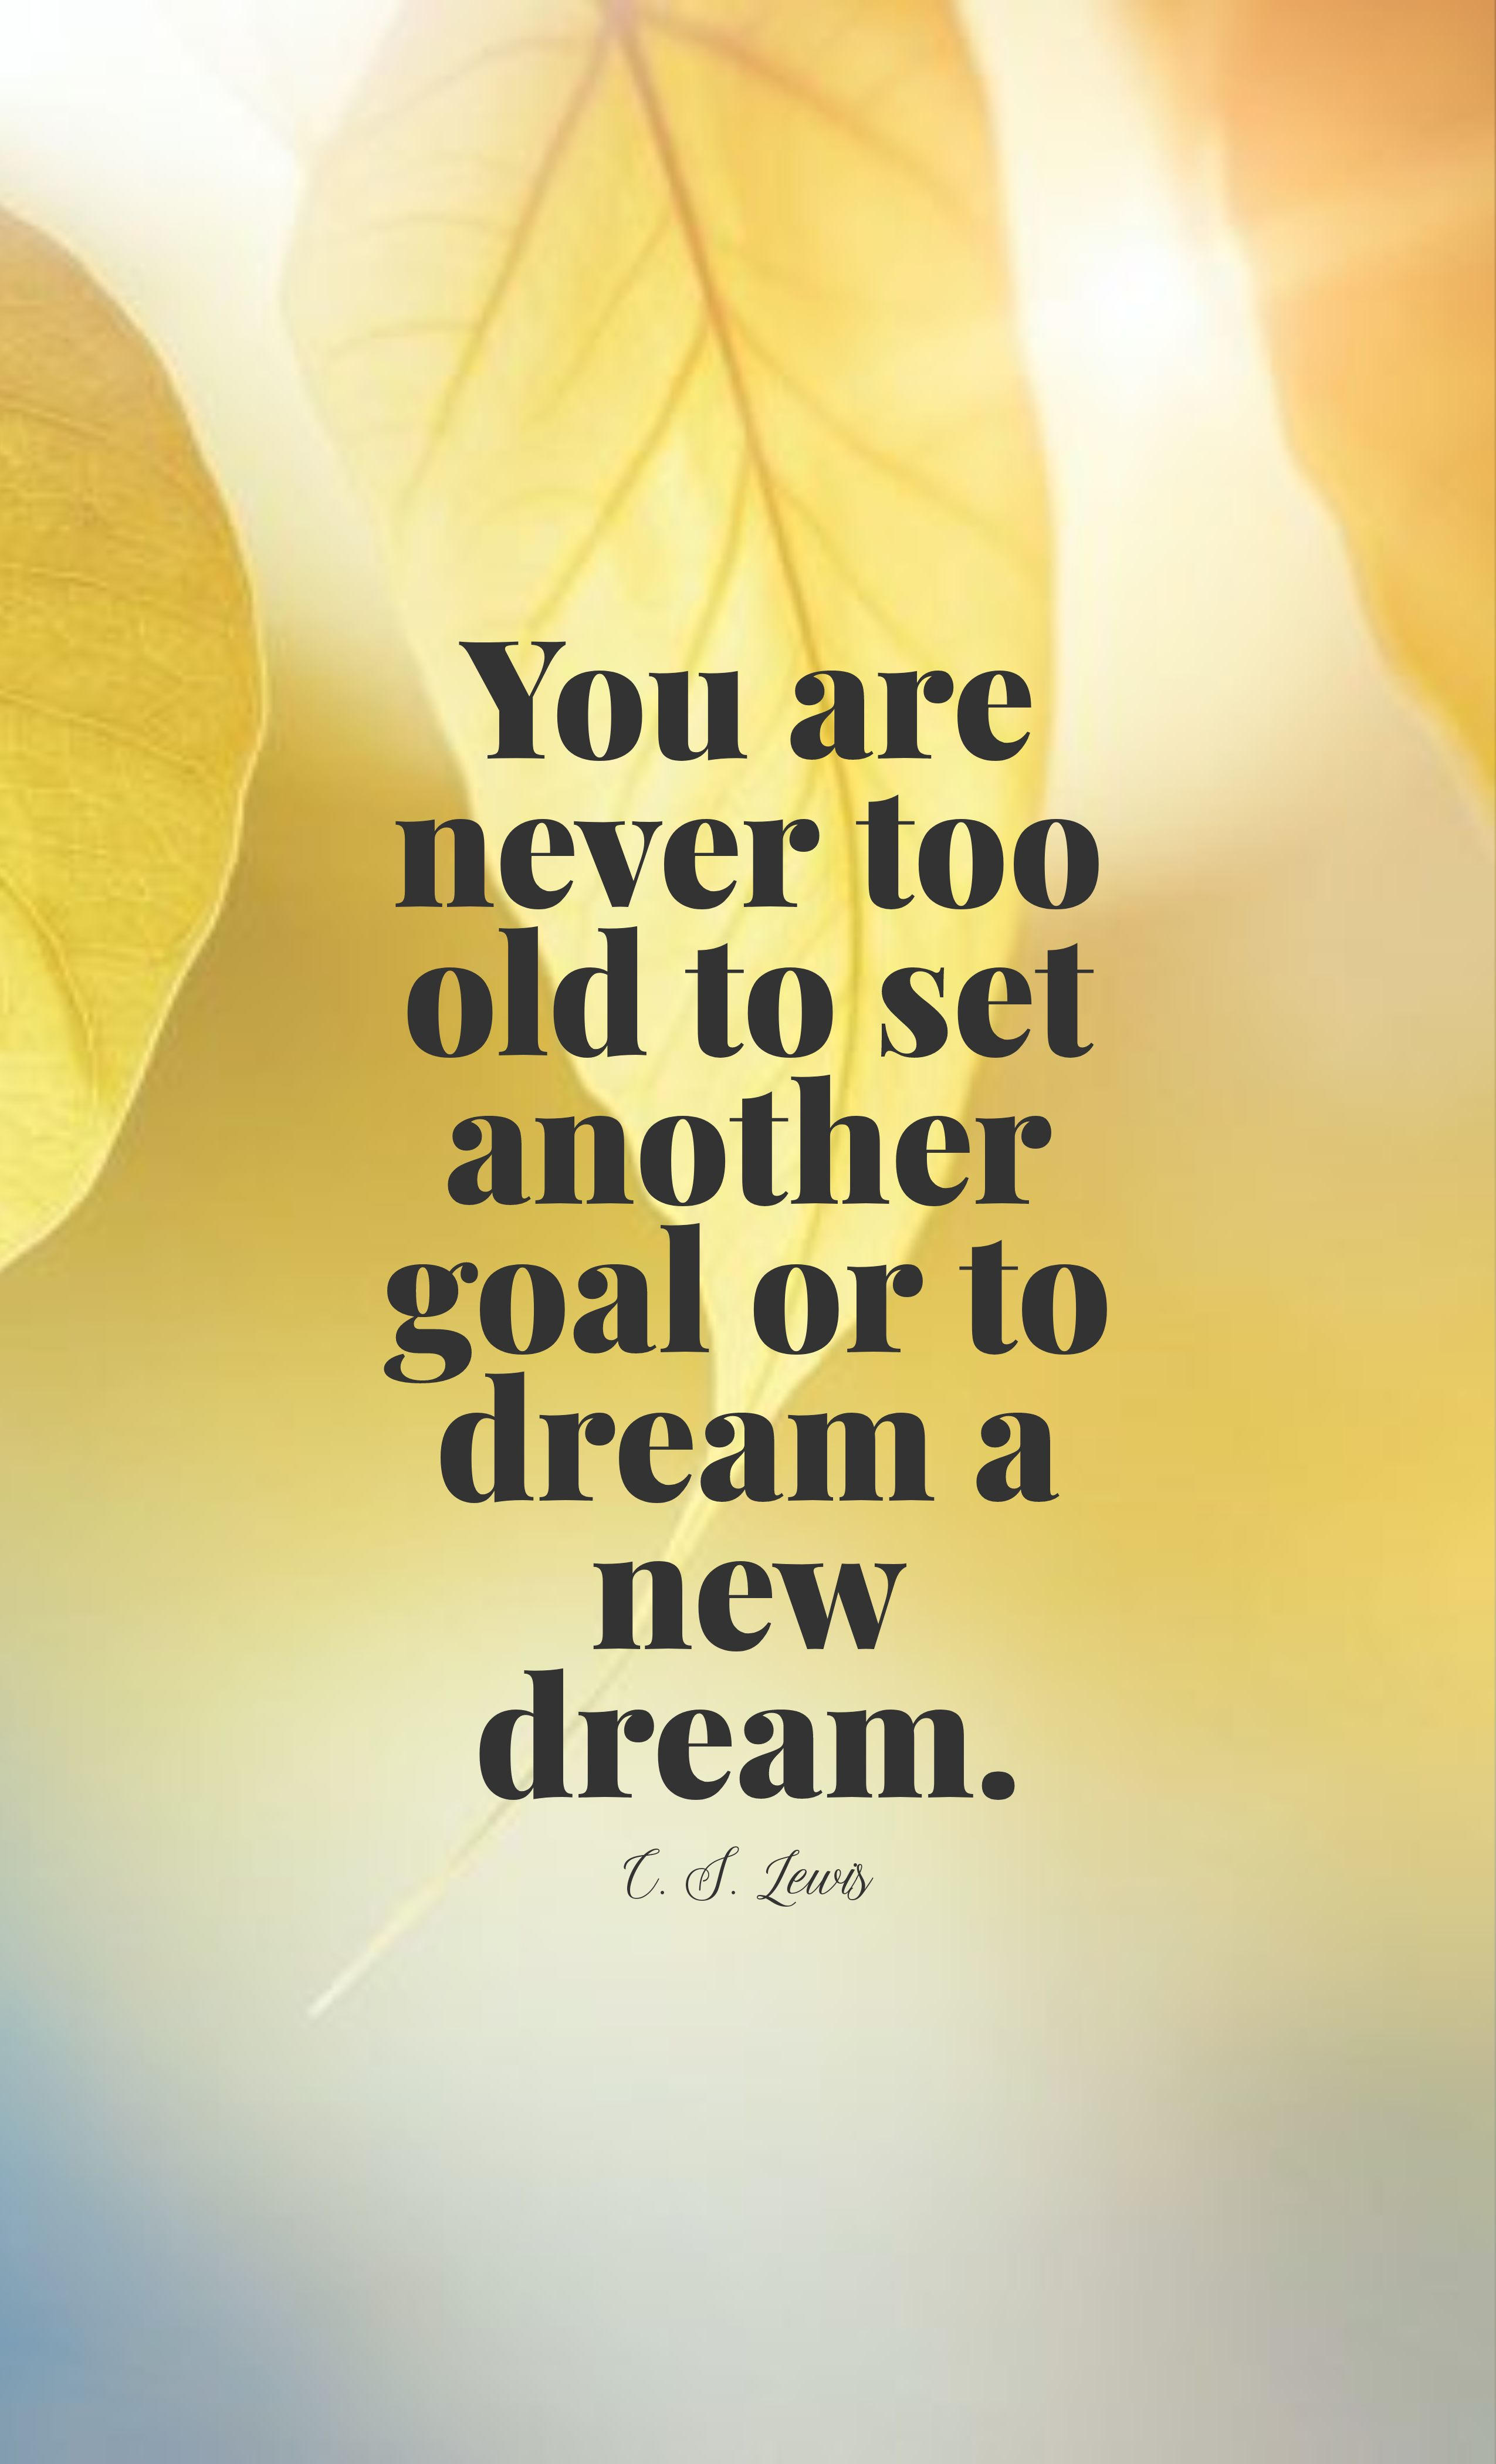 Quotes image of You are never too old to set another goal or to dream a new dream.